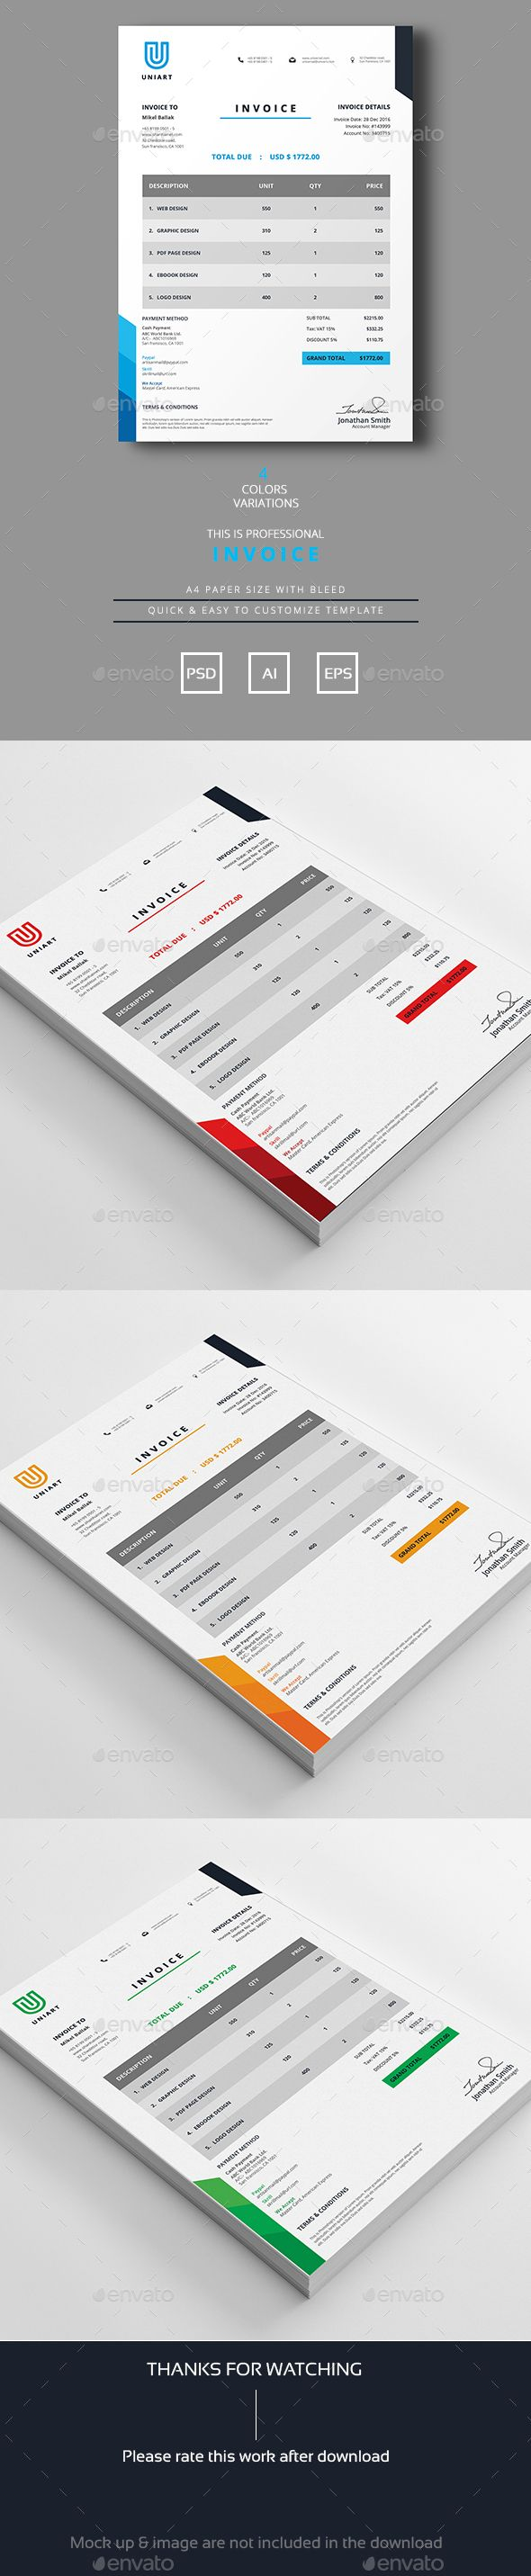 Invoice  Form Design Font Logo And Fonts